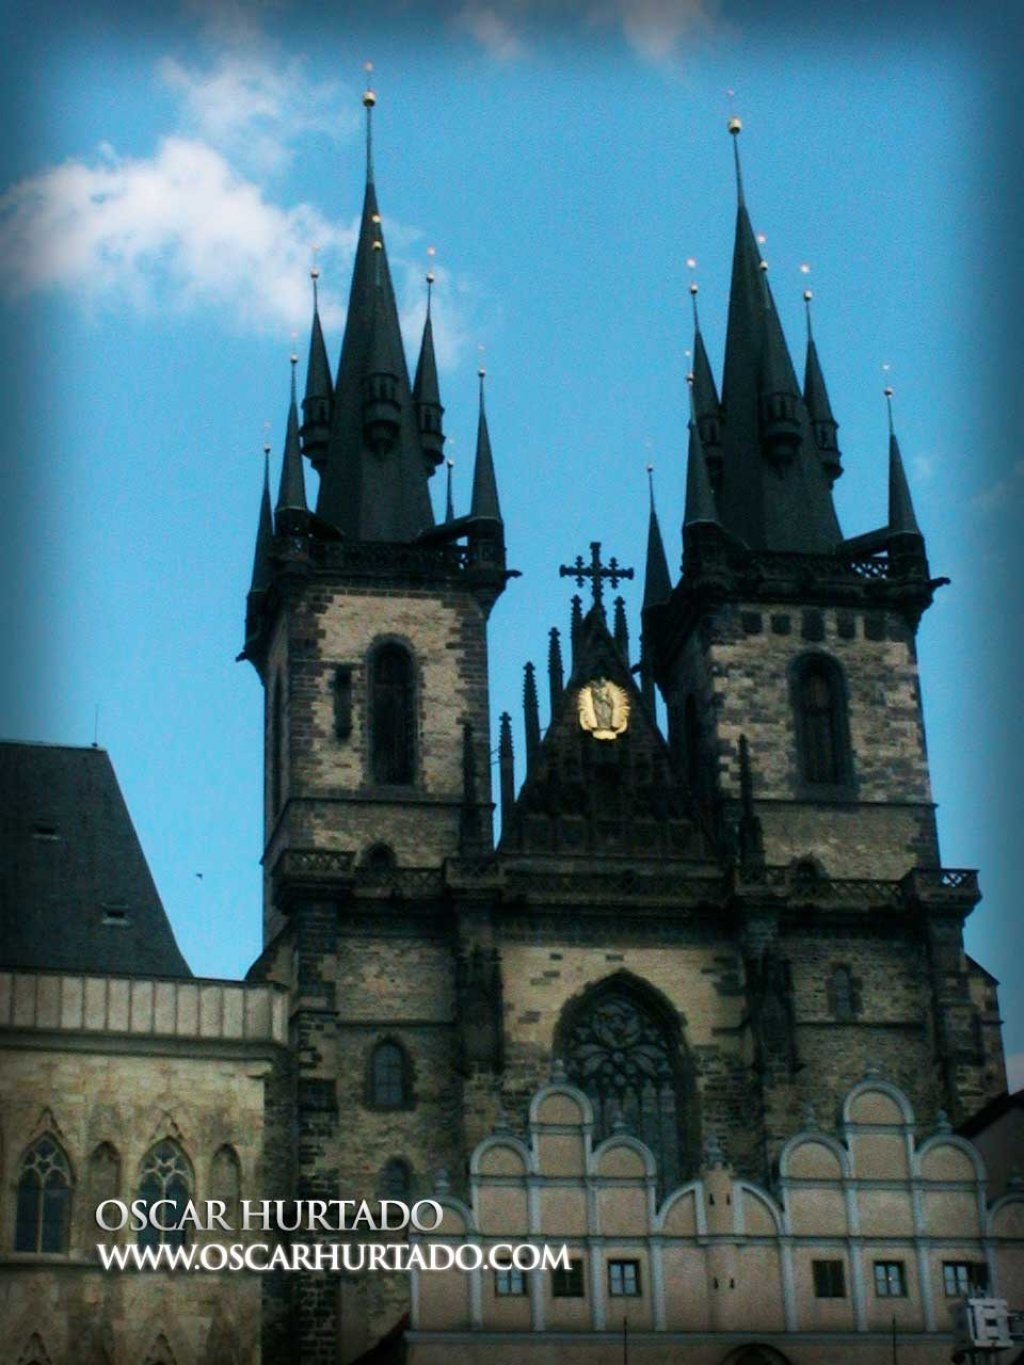 The Church of Our Lady before Týn considered as one of the landmarks of the city center